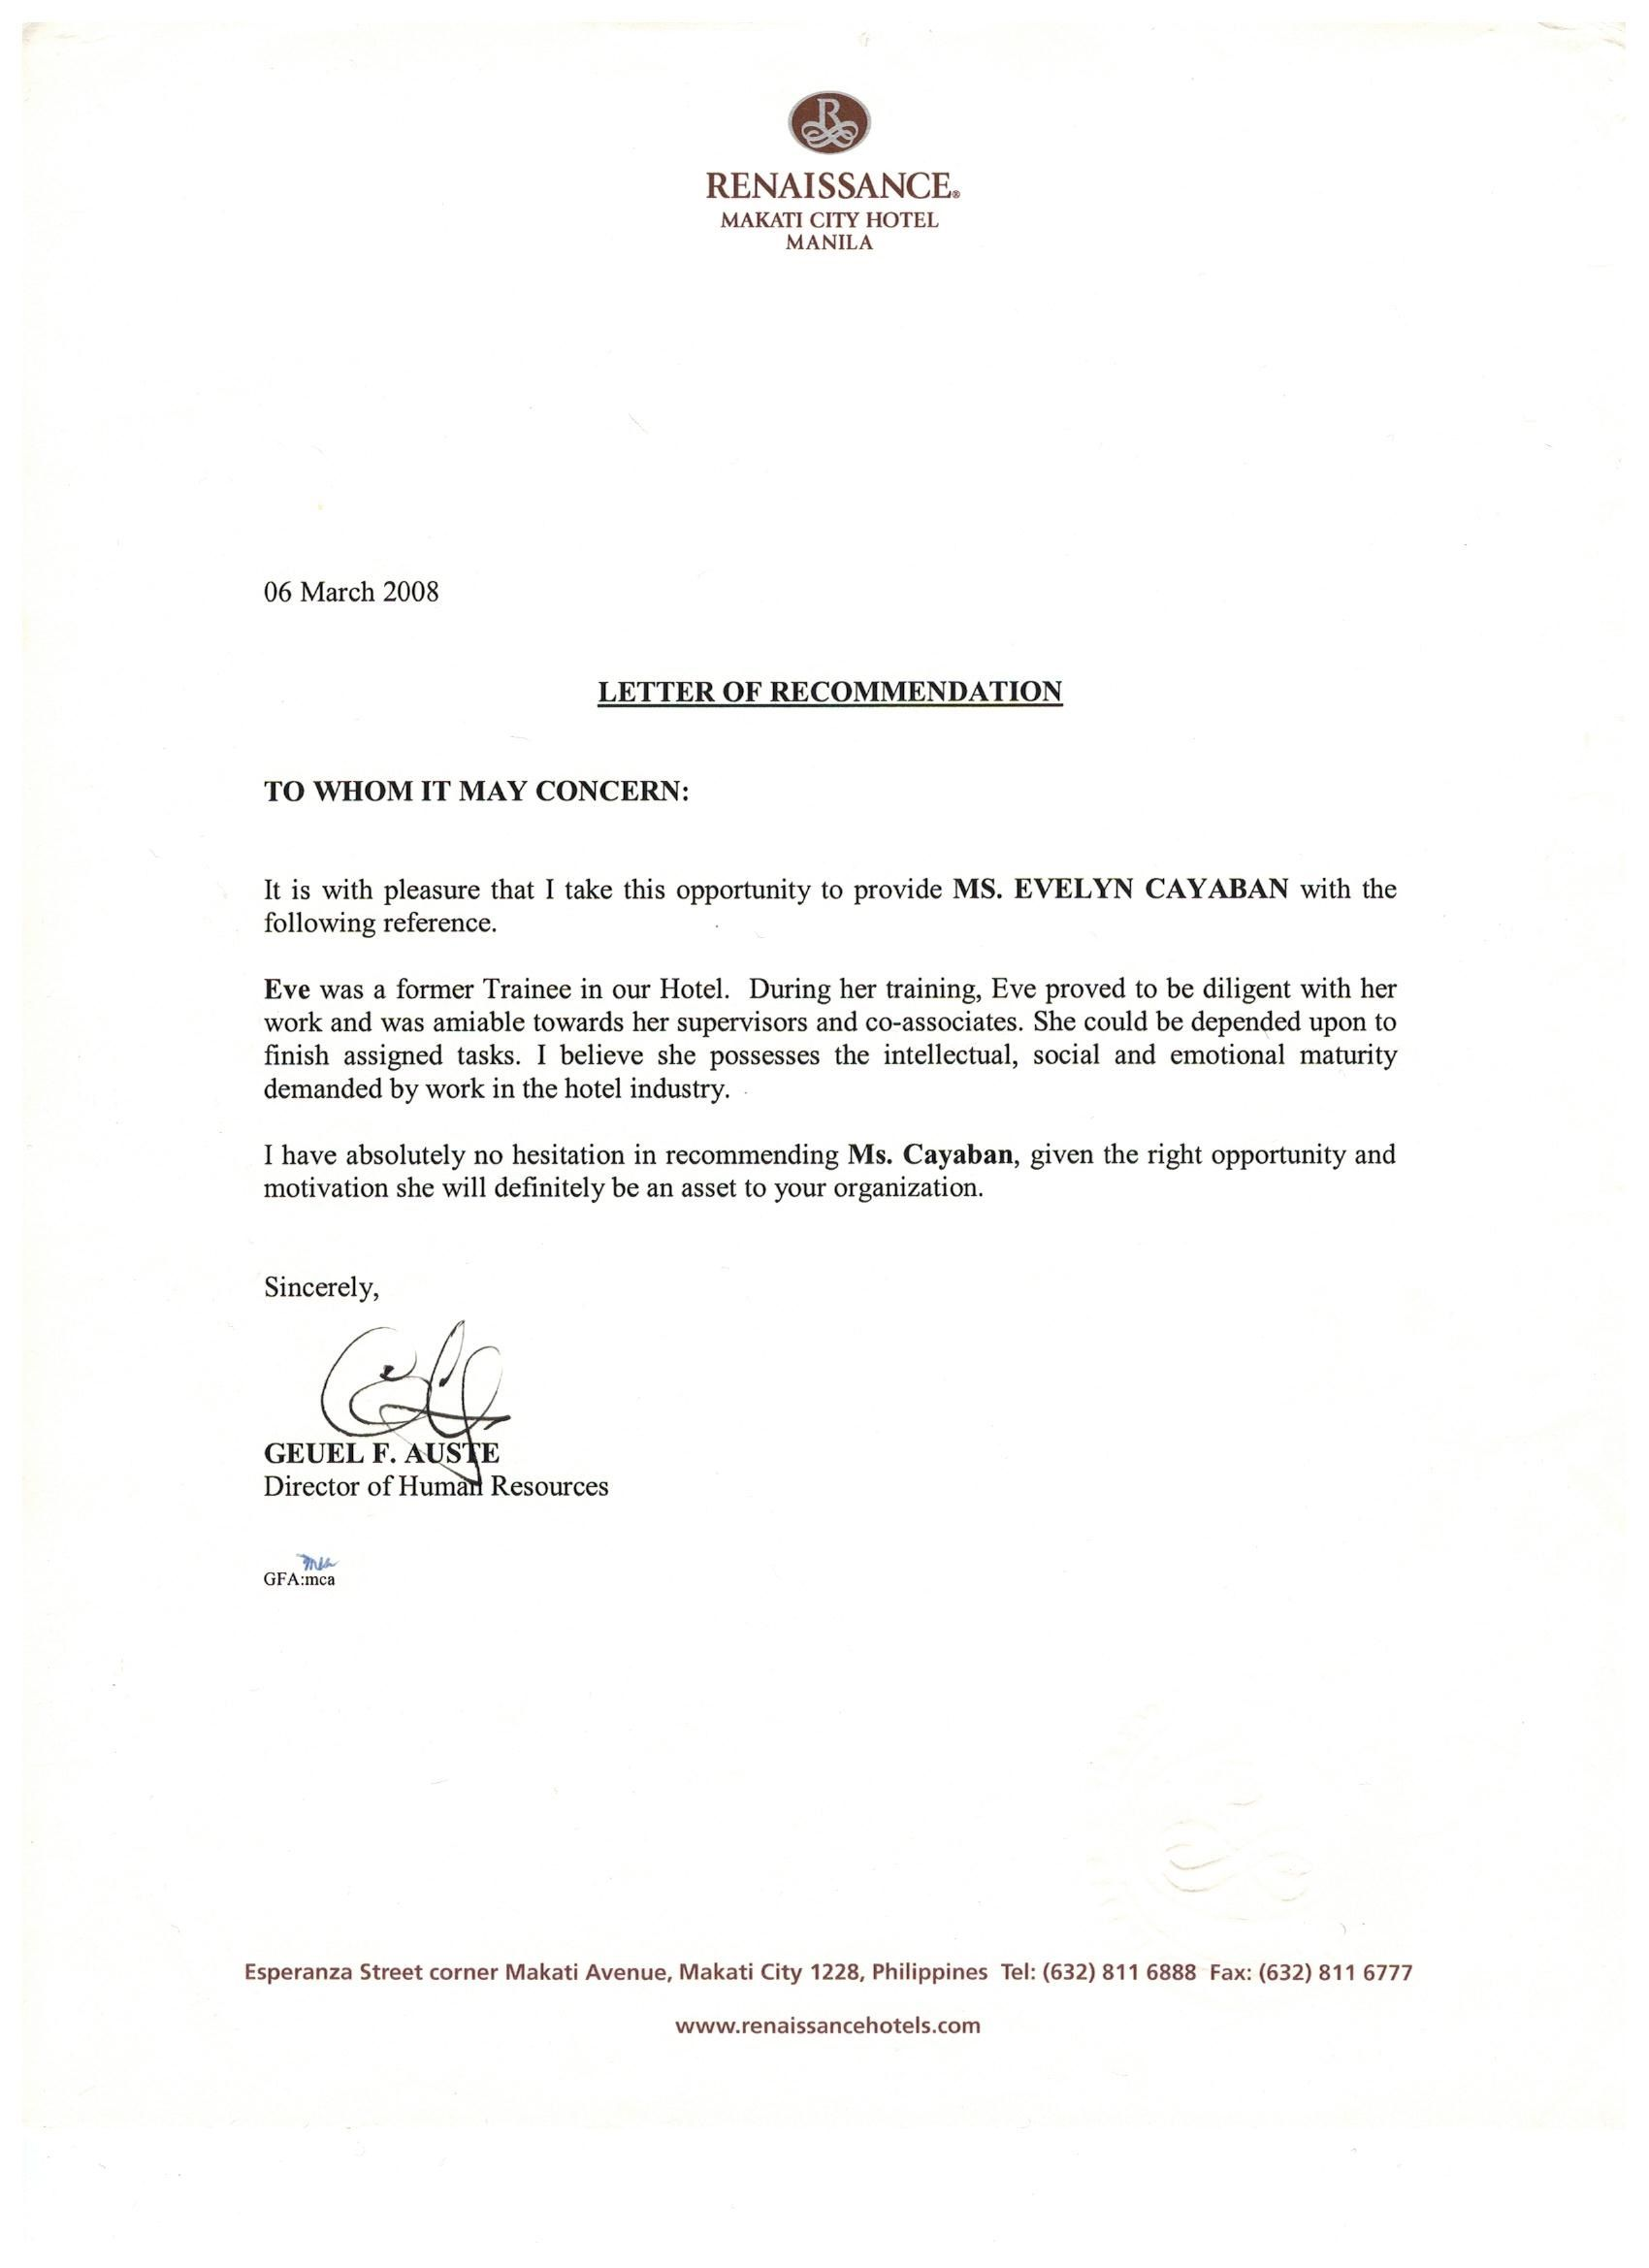 Recommendation letter from renaissance makati city hotel for Hotel recommendation